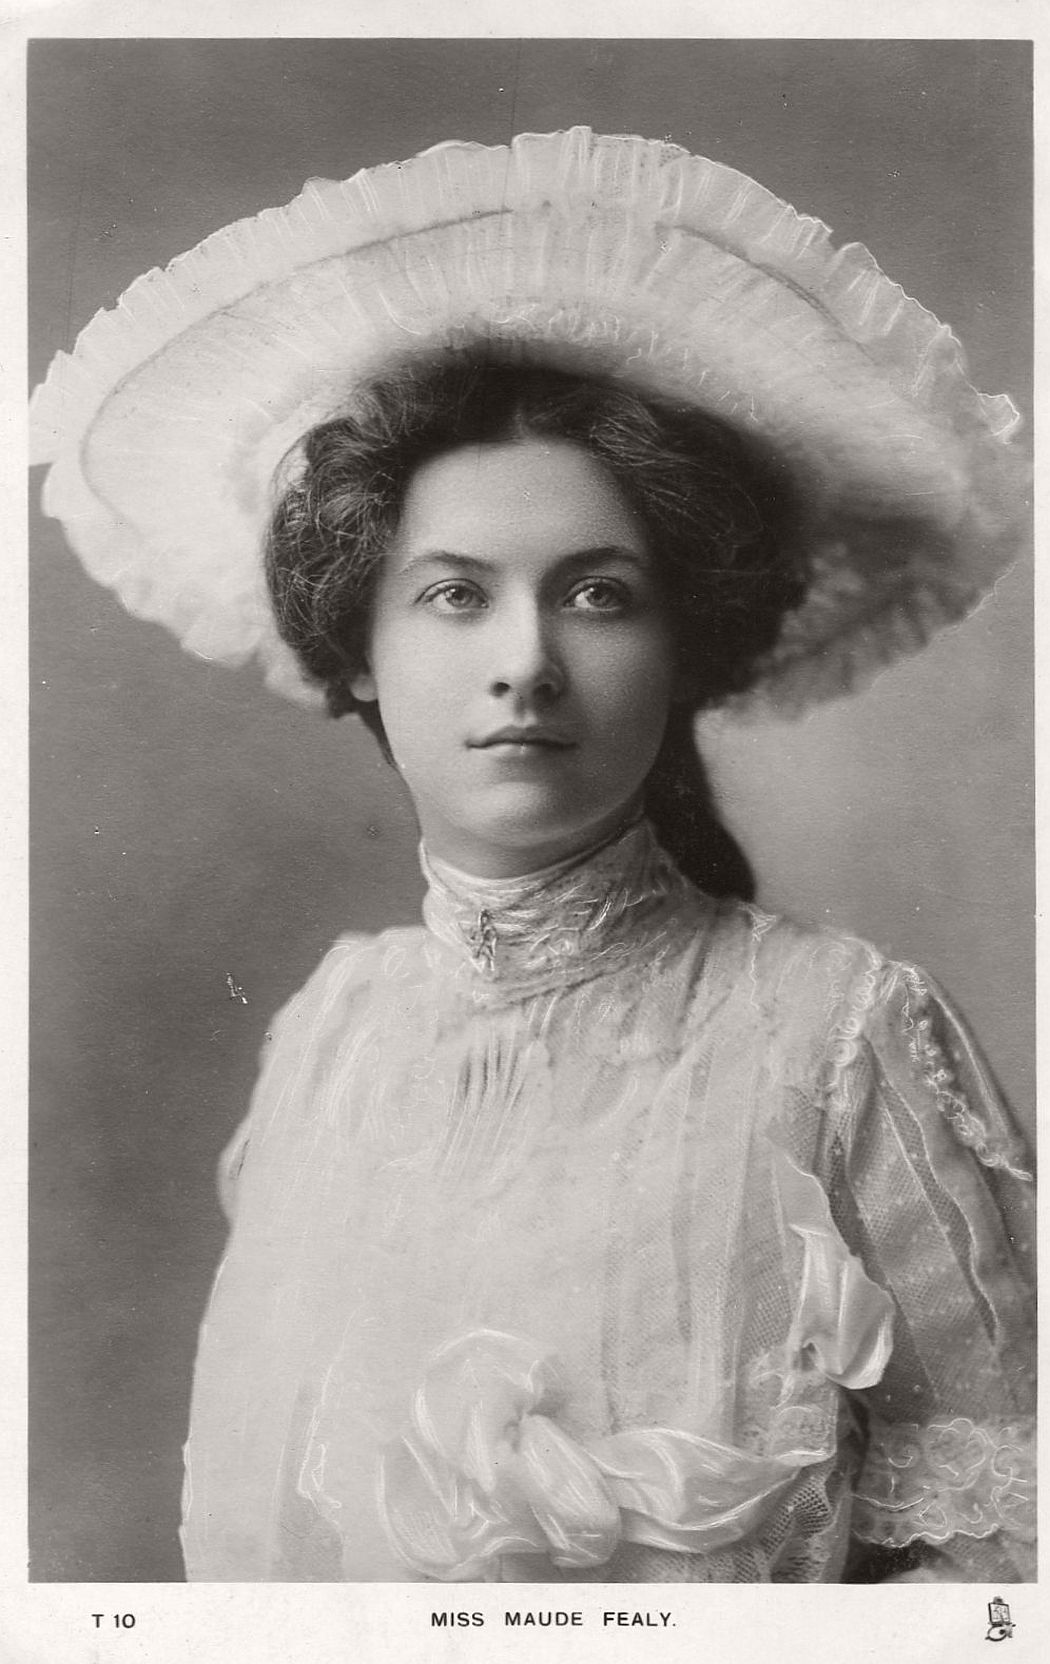 vintage-postcard-of-actress-miss-maude-fealy-1900s-early-xx-century-24